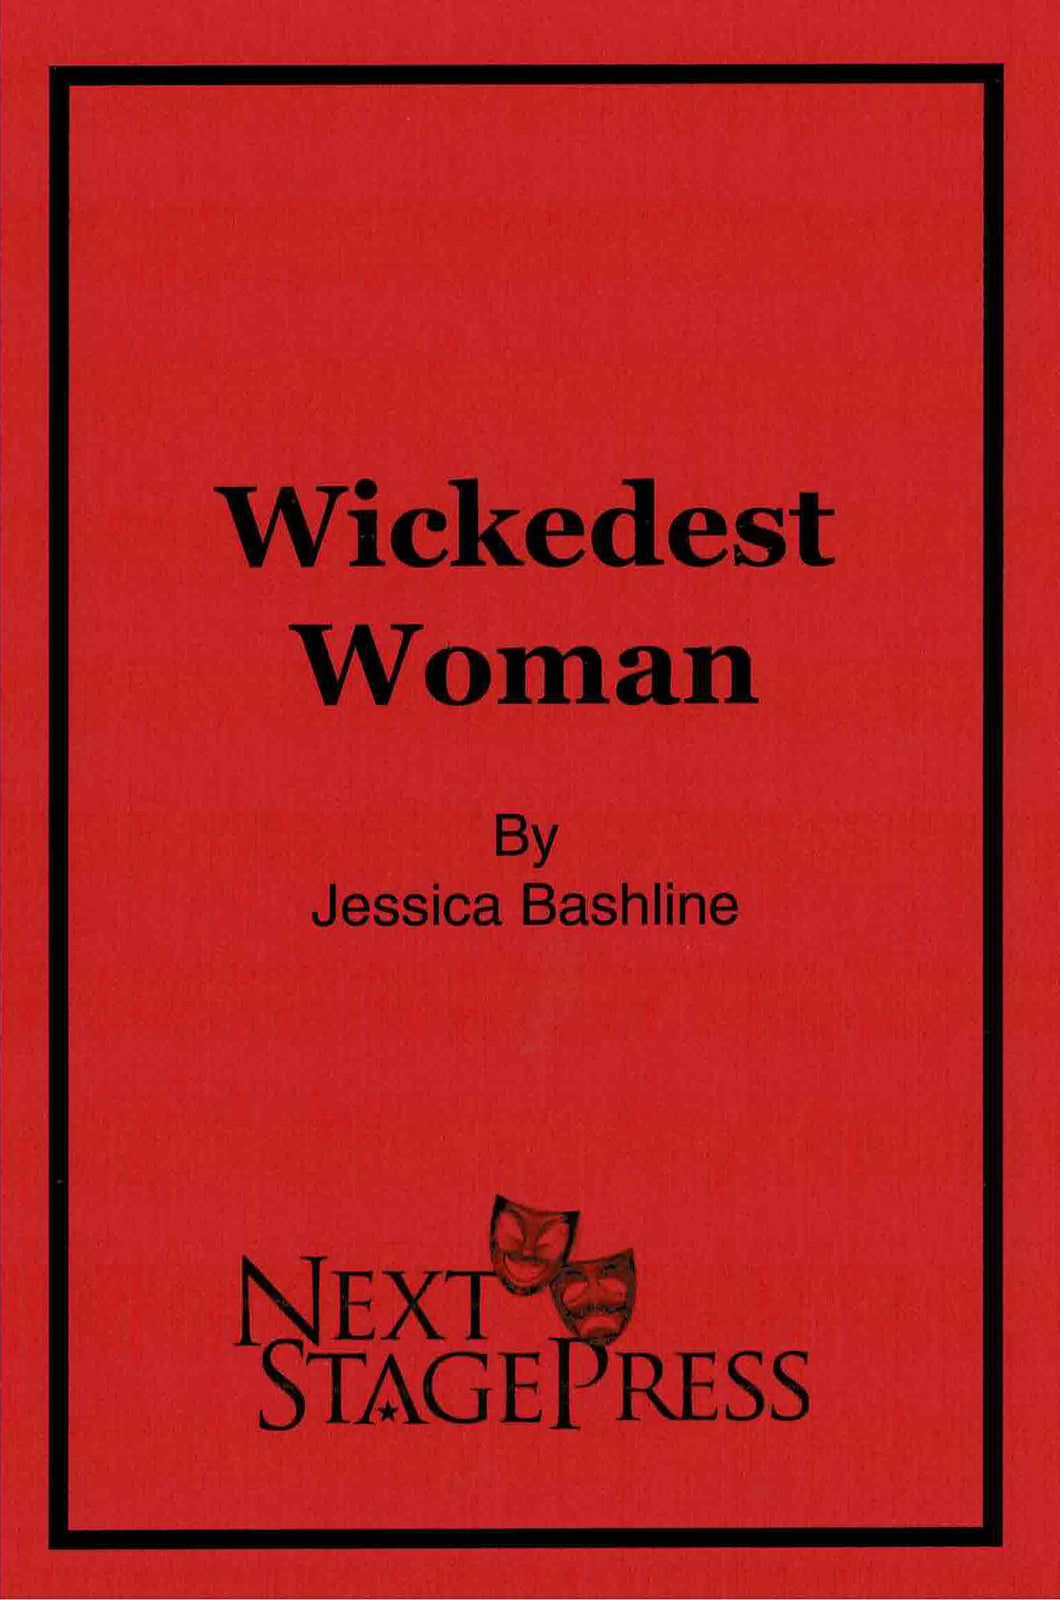 Wickedest Woman - Digital Version